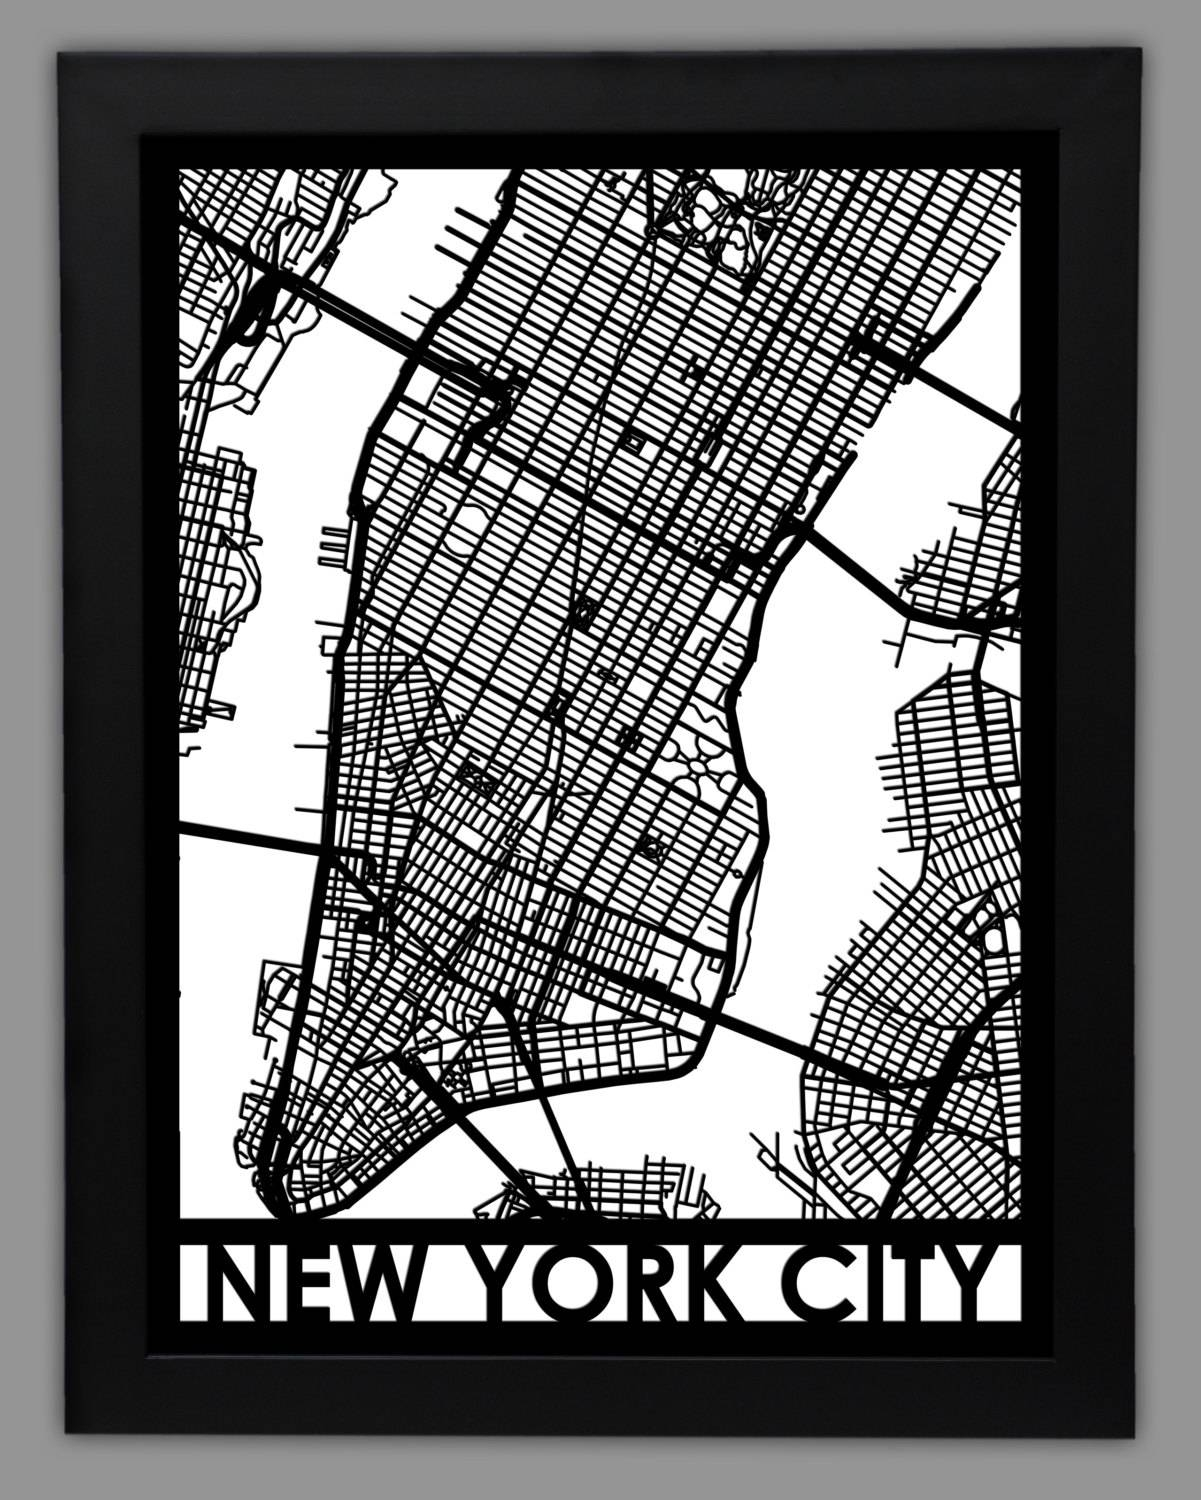 New York City Laser Cut Map 18X24 Framed City Map Pertaining To Most Popular City Map Wall Art (Gallery 8 of 20)